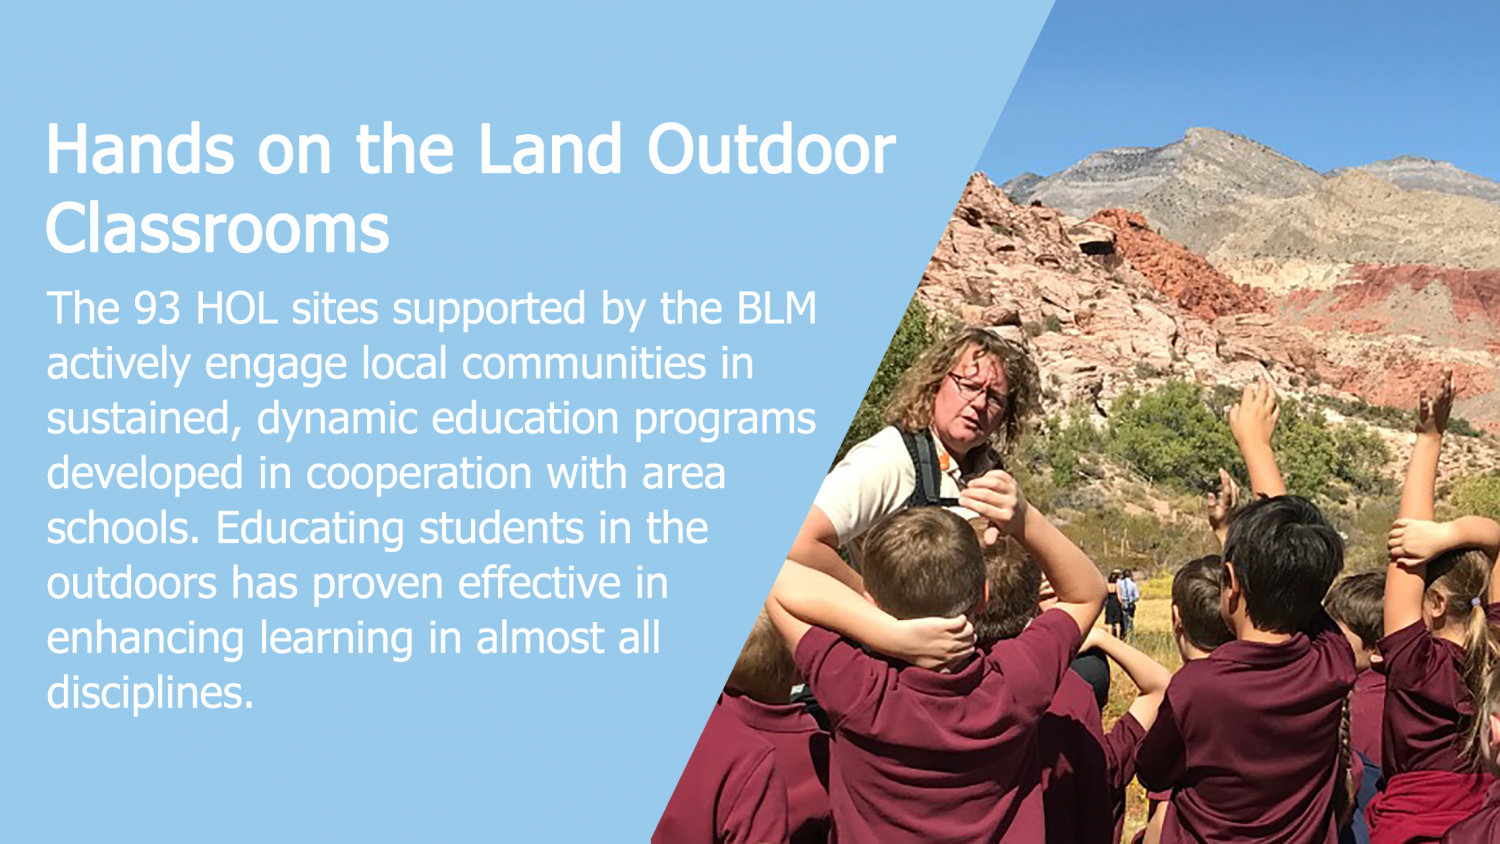 Hands on the Land Outdoor Classrooms: The 93 HOL sites supported by the BLM actively engage local communities in sustained, dynamic education progress developed in cooperation with area schools. Educating students in the outdoors as proven effective in en